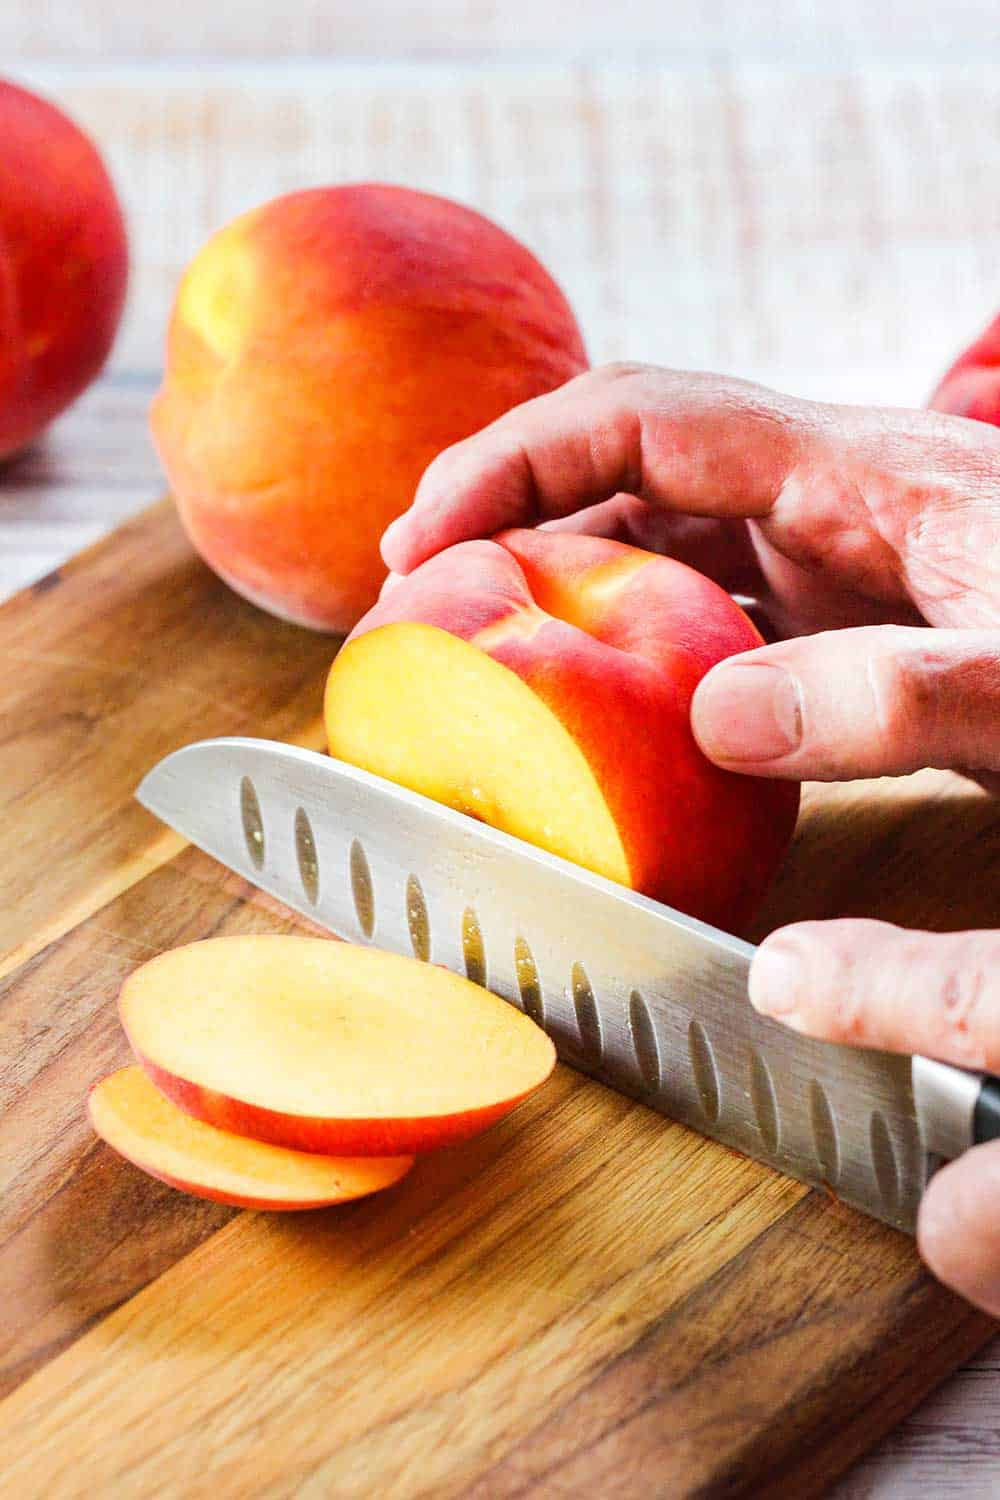 A chef's knife slicing through a yellow peach.